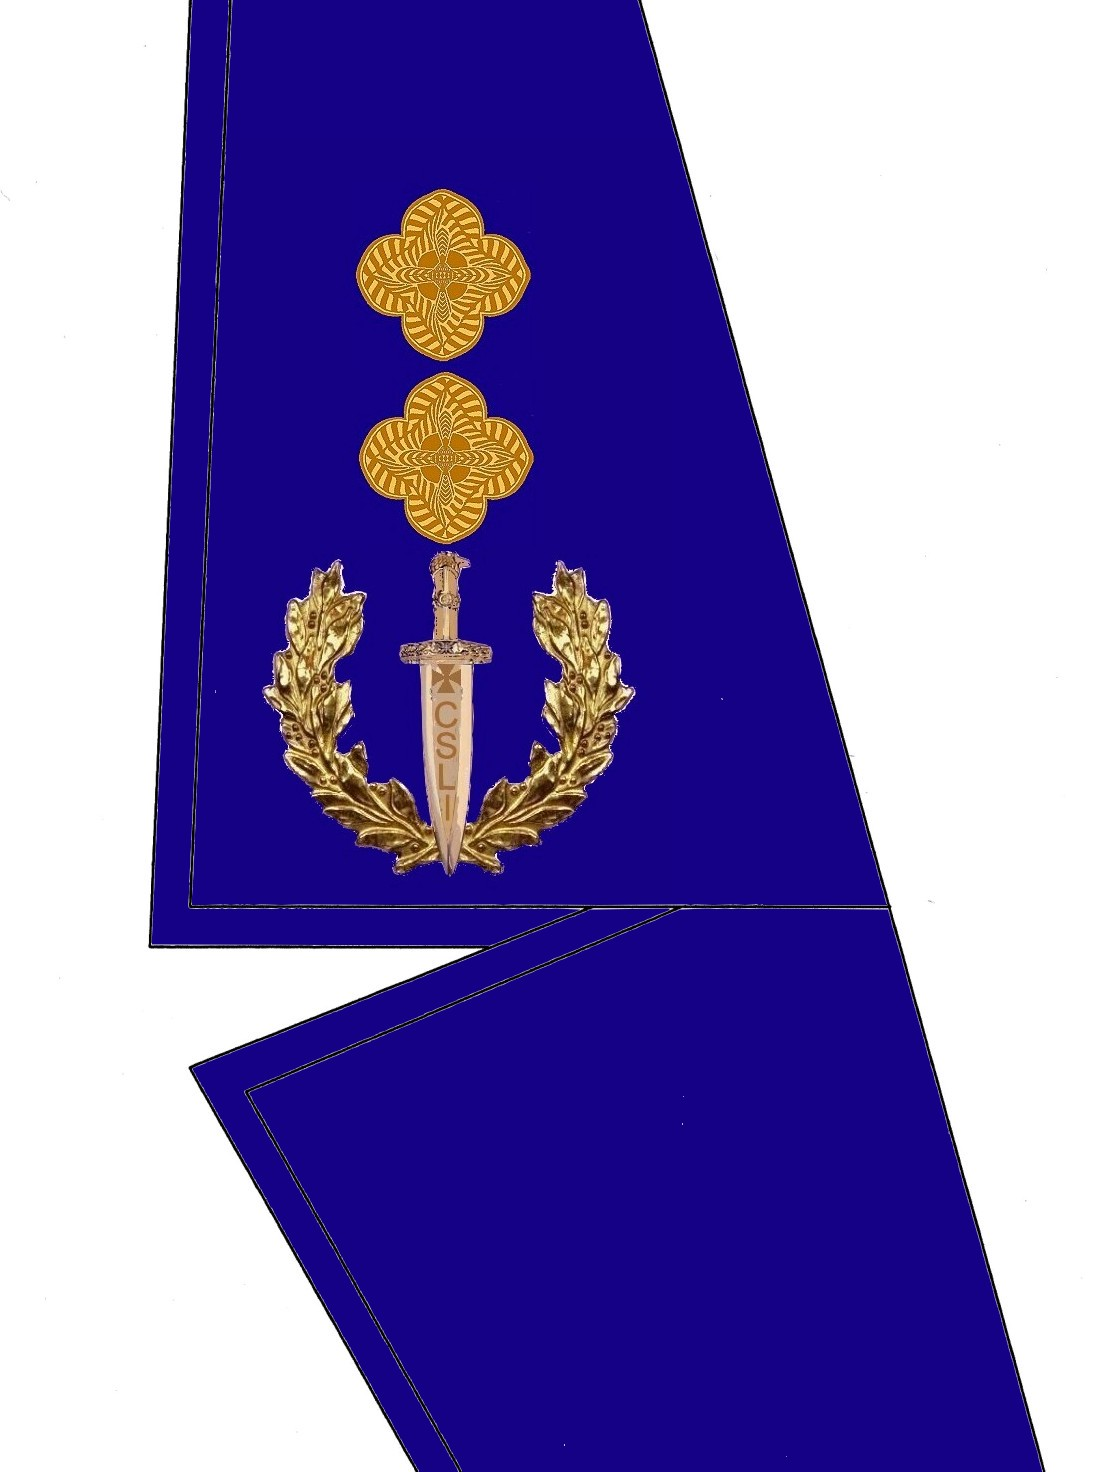 19 Kragen Rangabzeichen General Major HG Blau